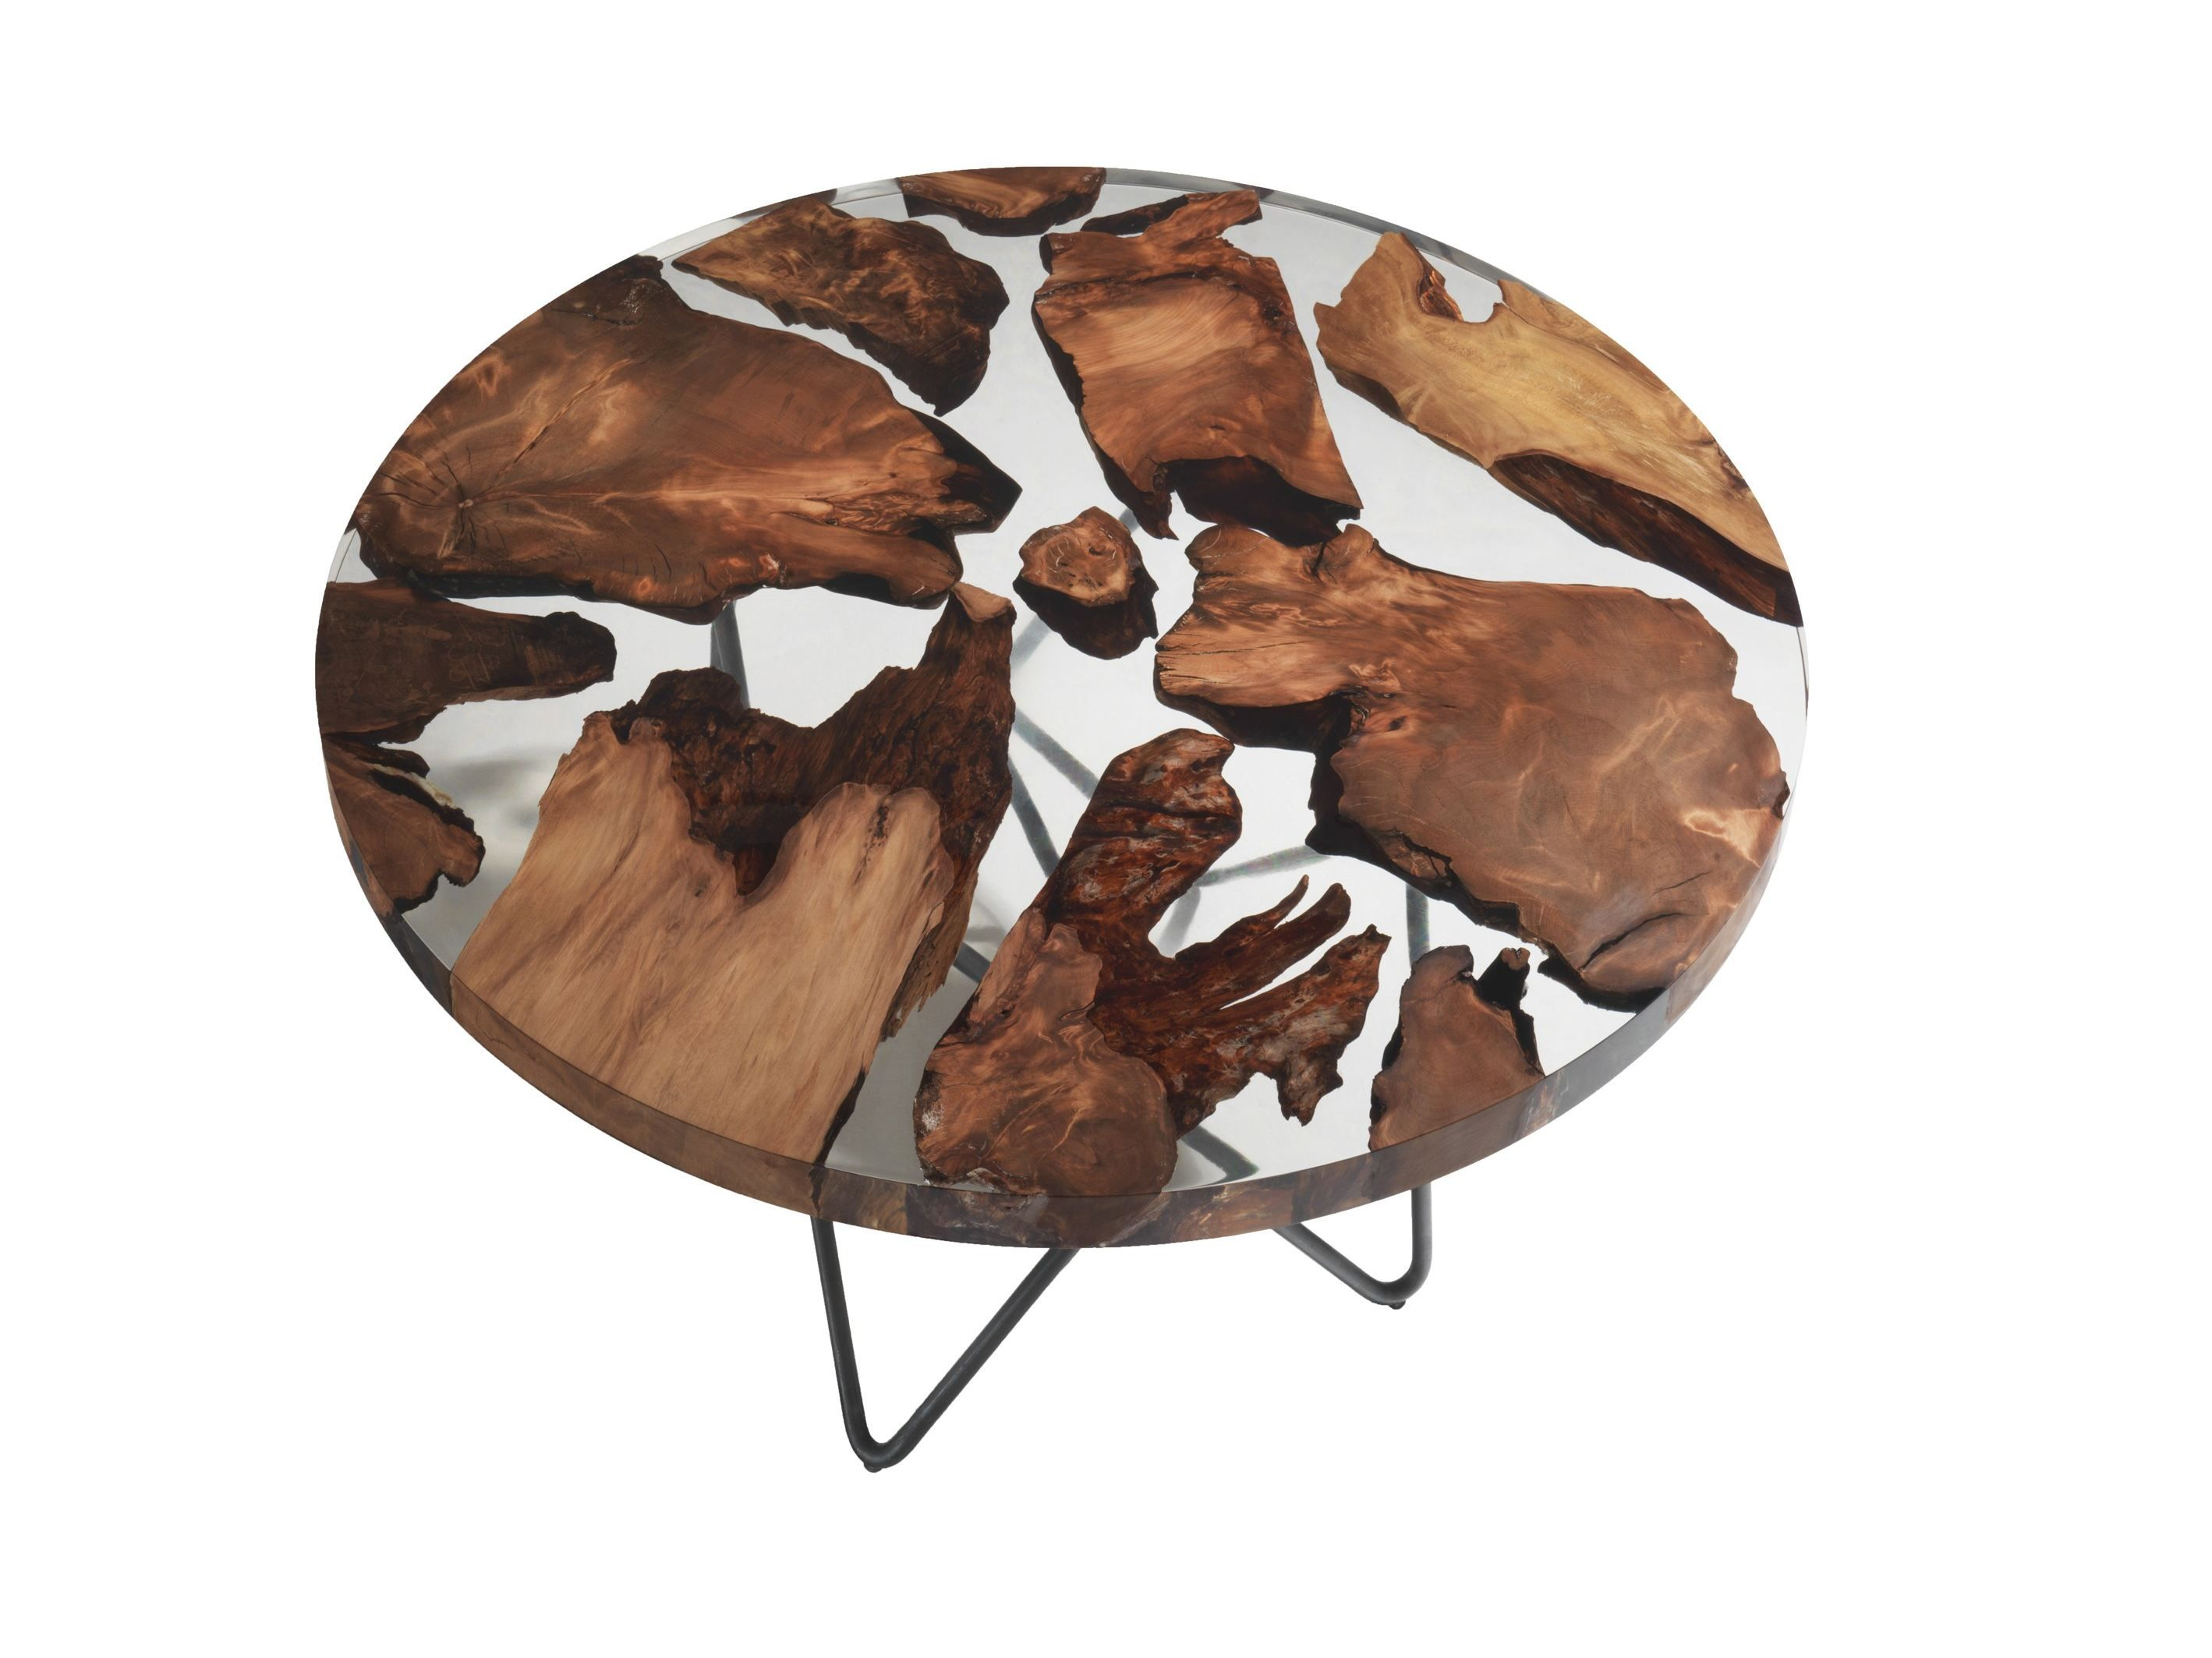 Table Ronde Bois Design Earth In 2019 Rock Wood Metal Resin Table Furniture Wood